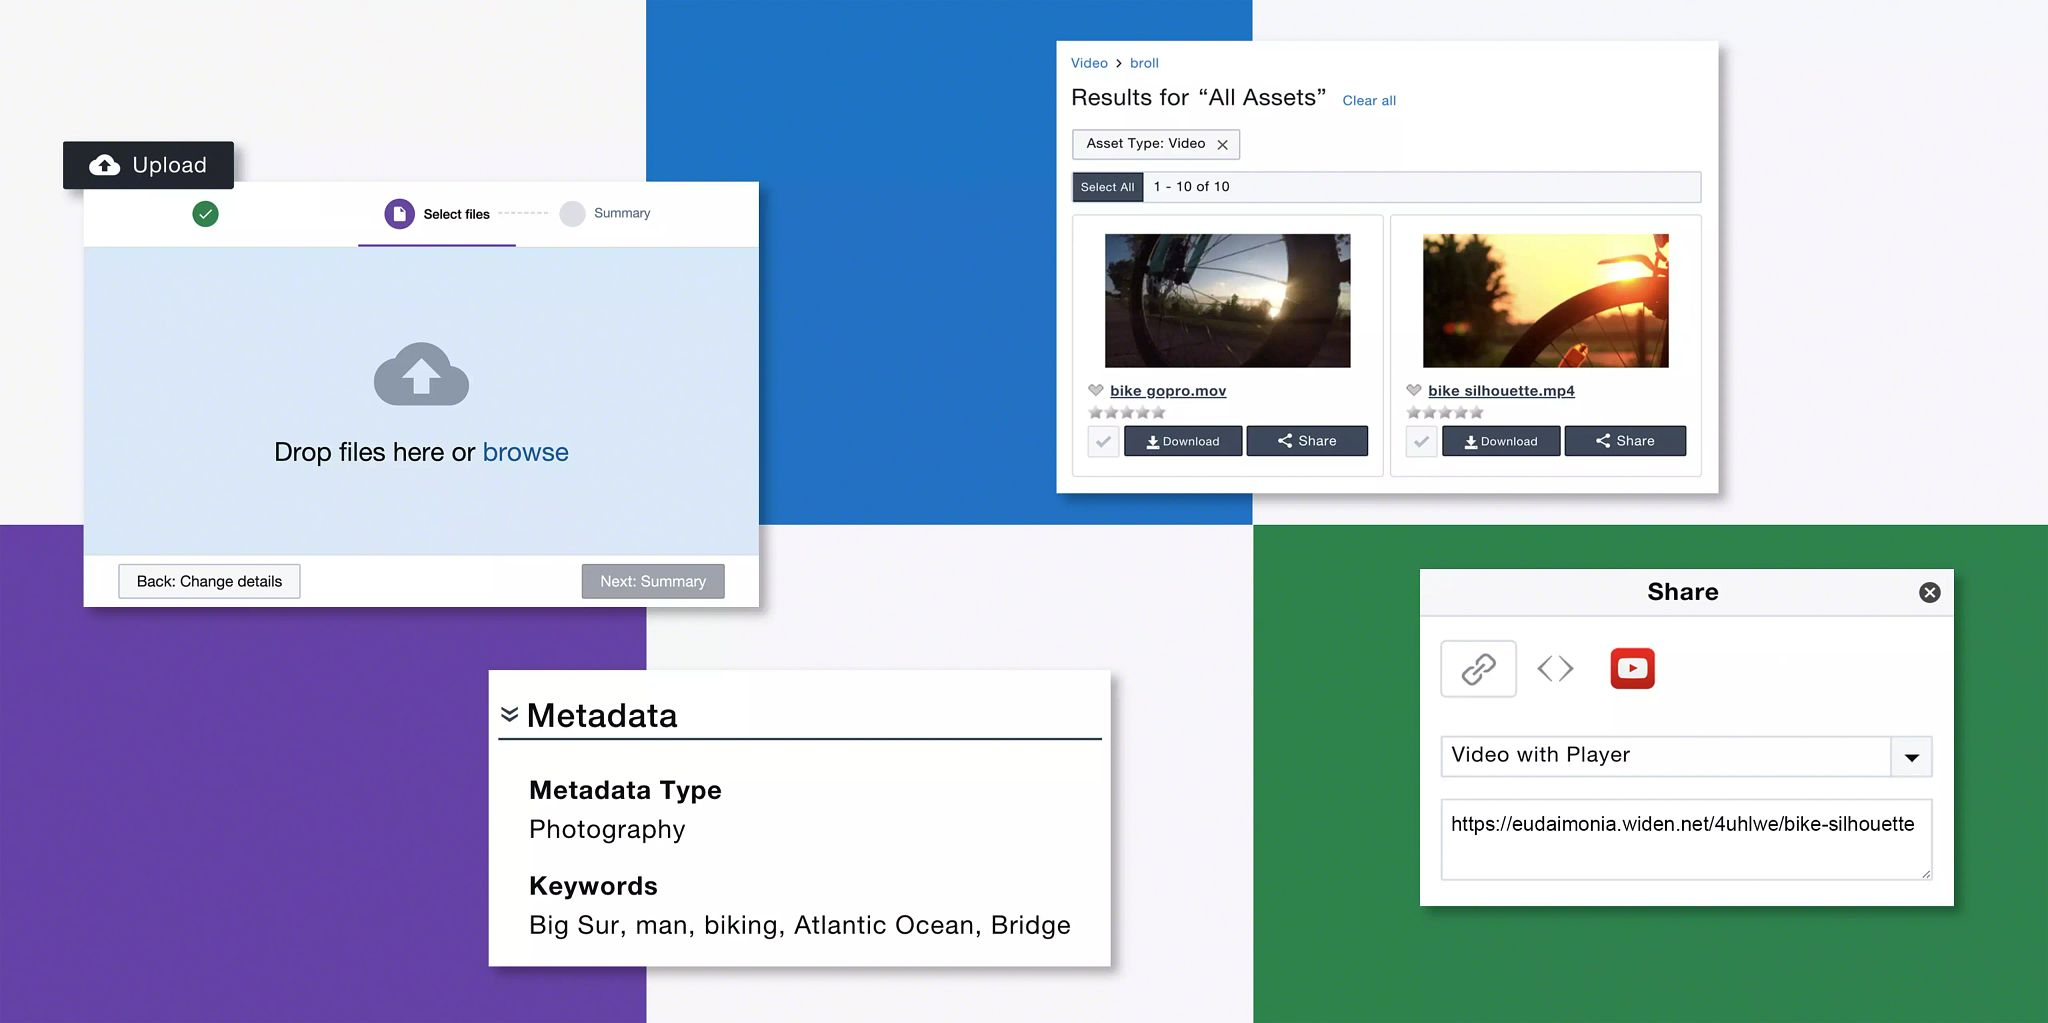 Header image: a grid background with every other space white and the opposite ones a solid color. Four floating screenshots of different features in the Widen Collective are in the foreground.